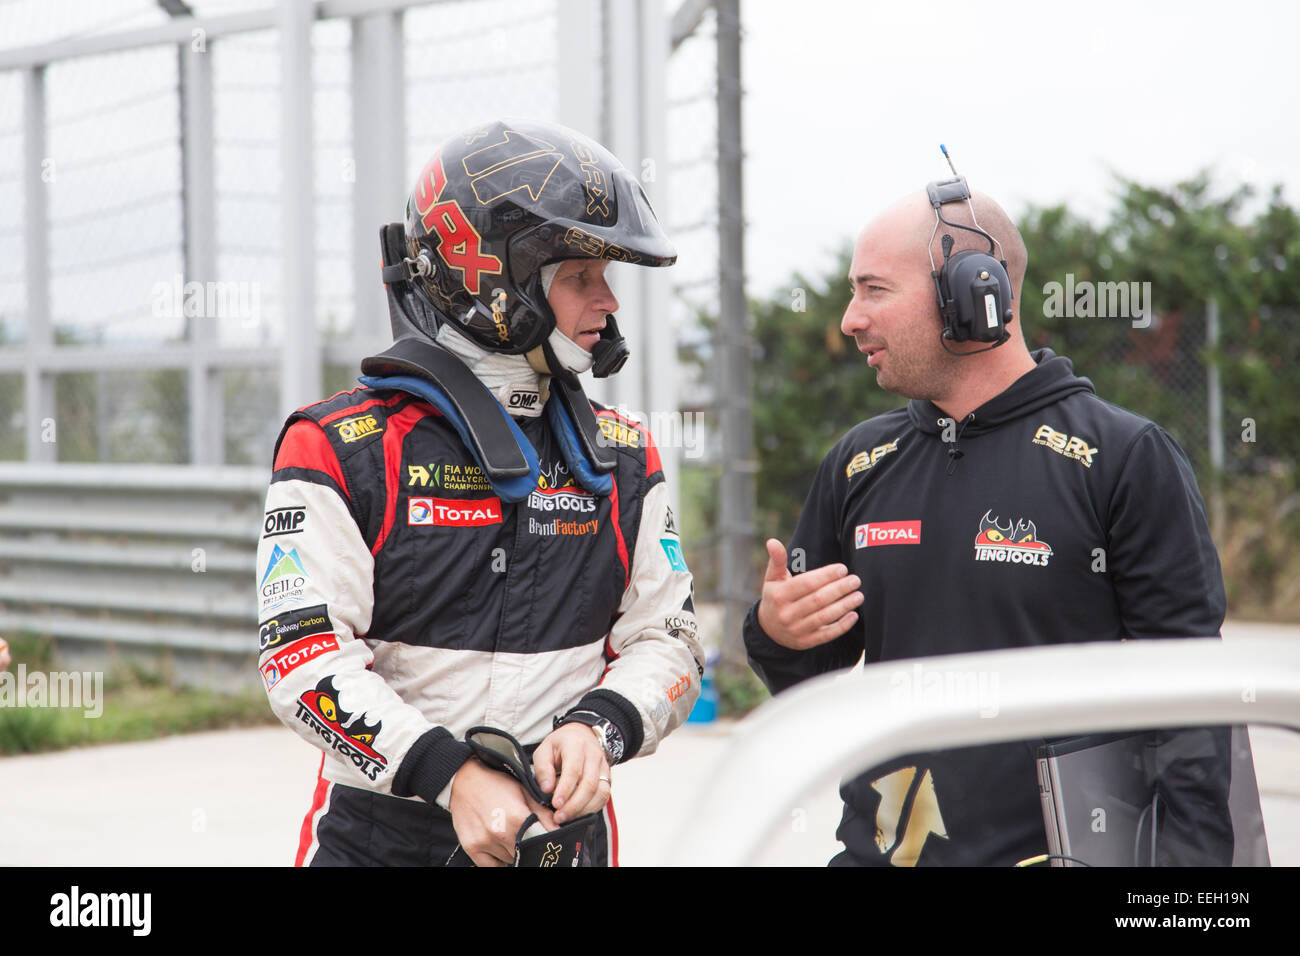 ISTANBUL, TURKEY - OCTOBER 11, 2014: Petter Solberg talk with his mechanic before FIA World Rallycross Championship. - Stock Image